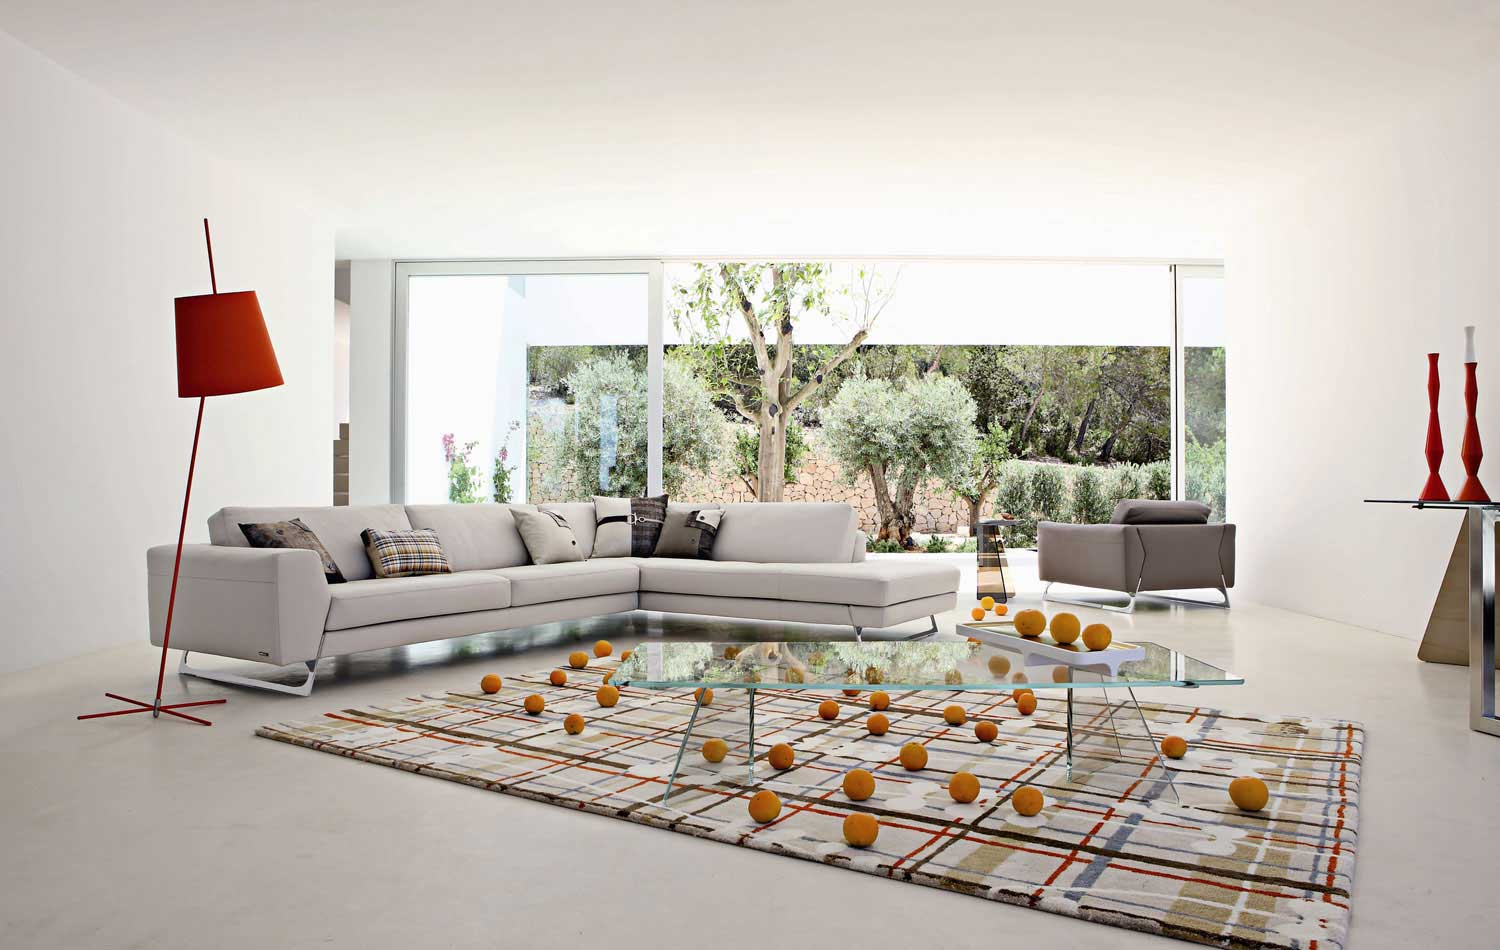 Living Room Inspiration 120 Modern Sofas by Roche Bobois (Part 3 3) Architecture& Design